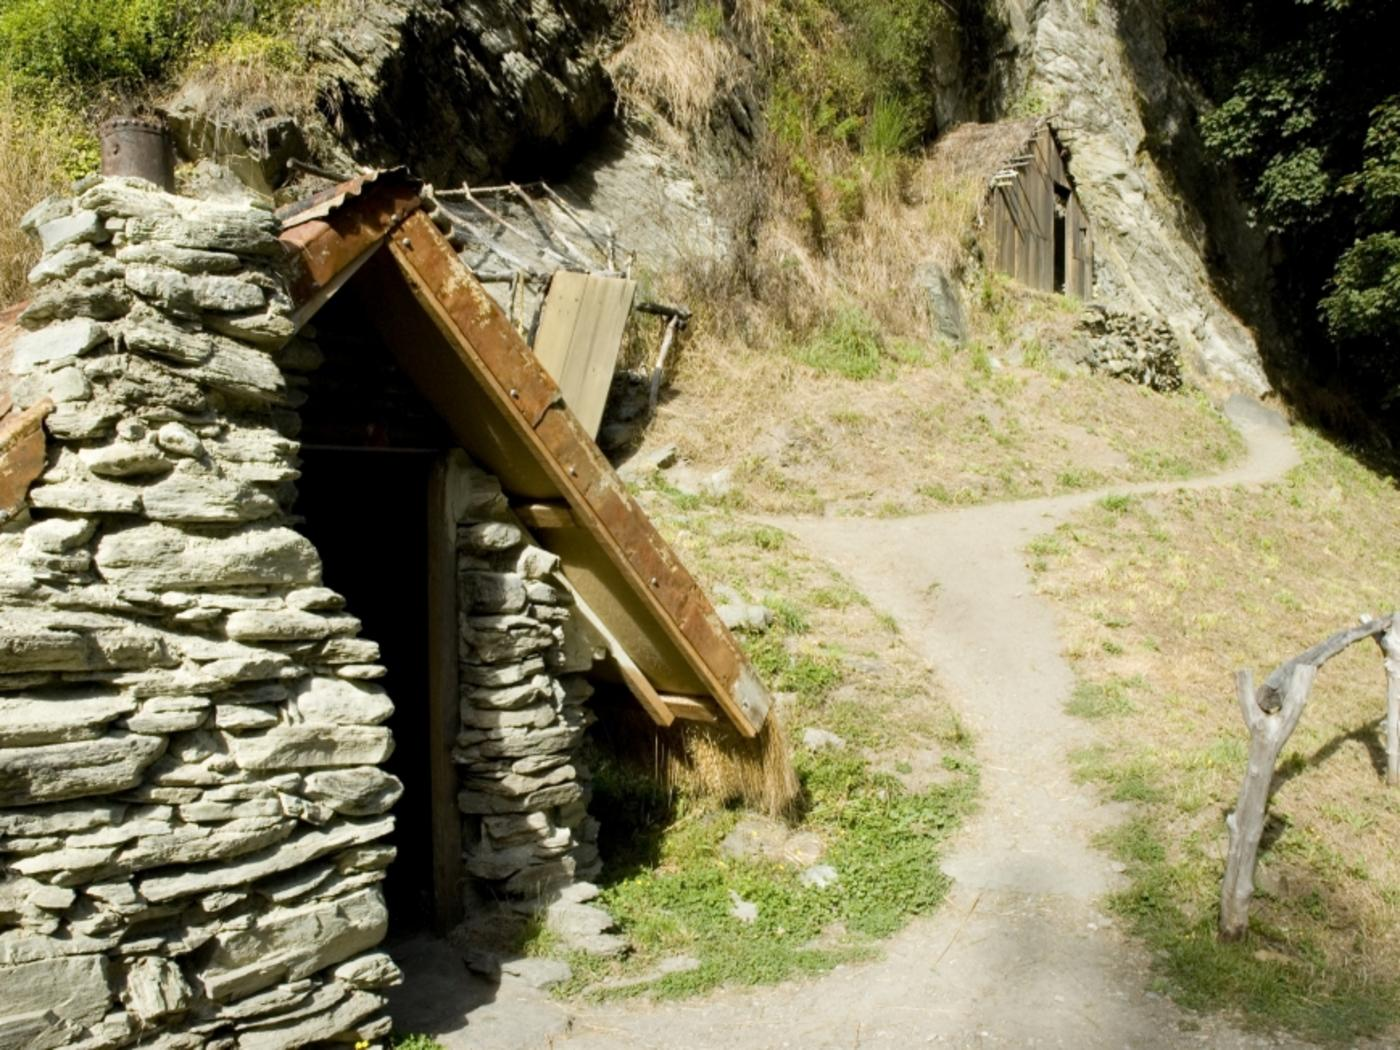 A hut situated in the Chinese Village in Arrowtown